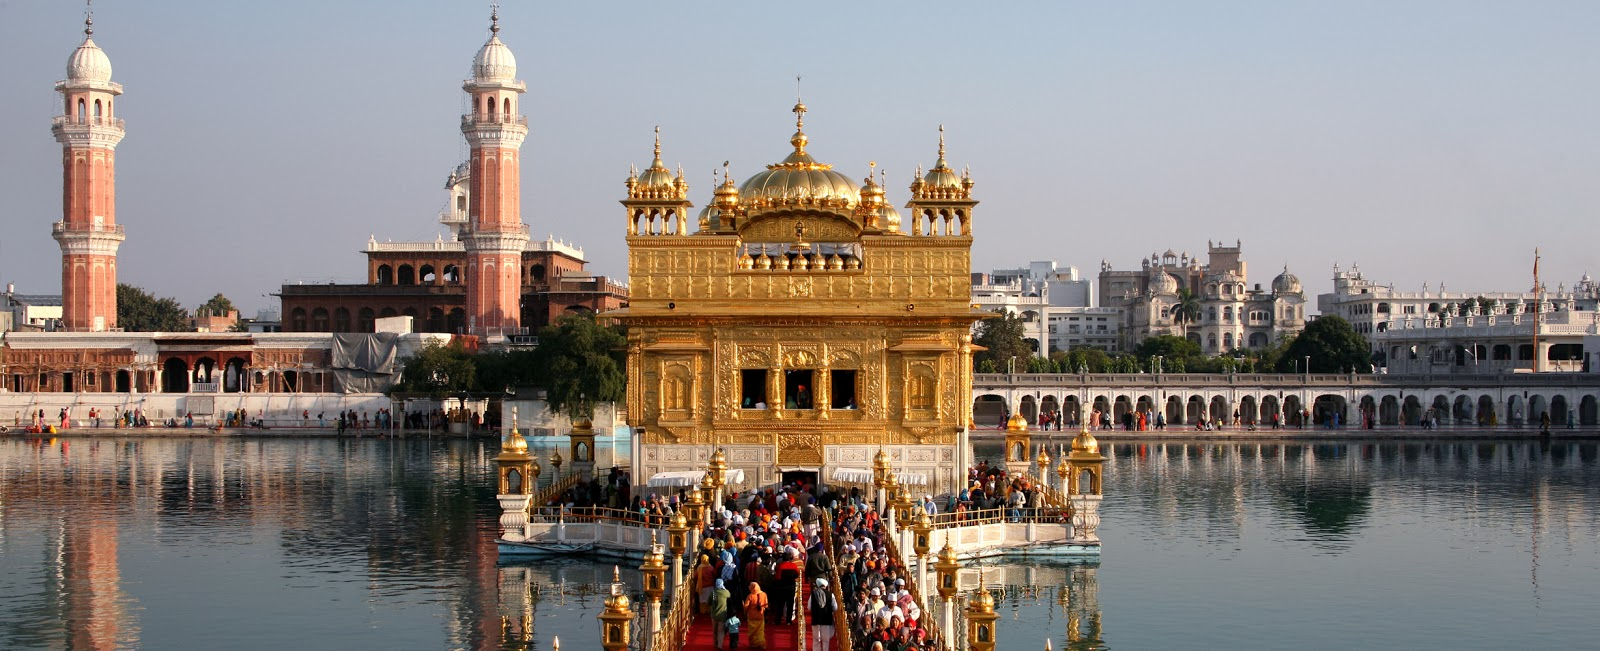 Download Golden Temple Front Image High Resolution 16x9 Hd Techdocks